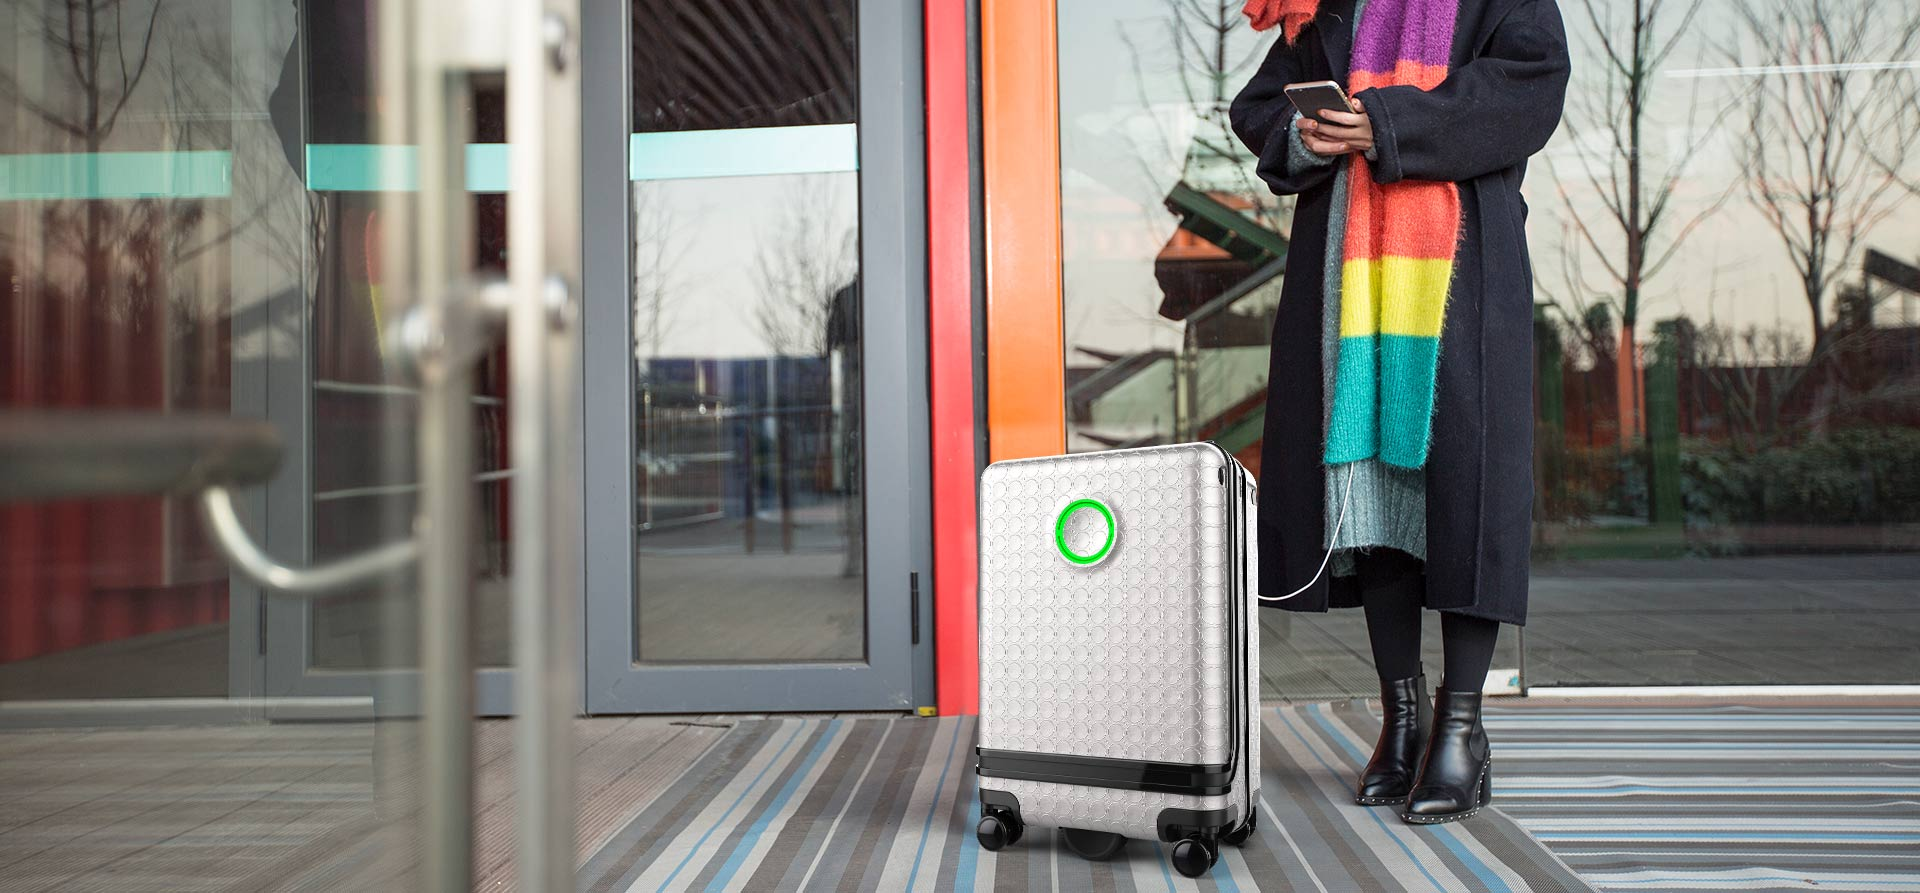 Airwheel SR5 valise de robotique intelligente